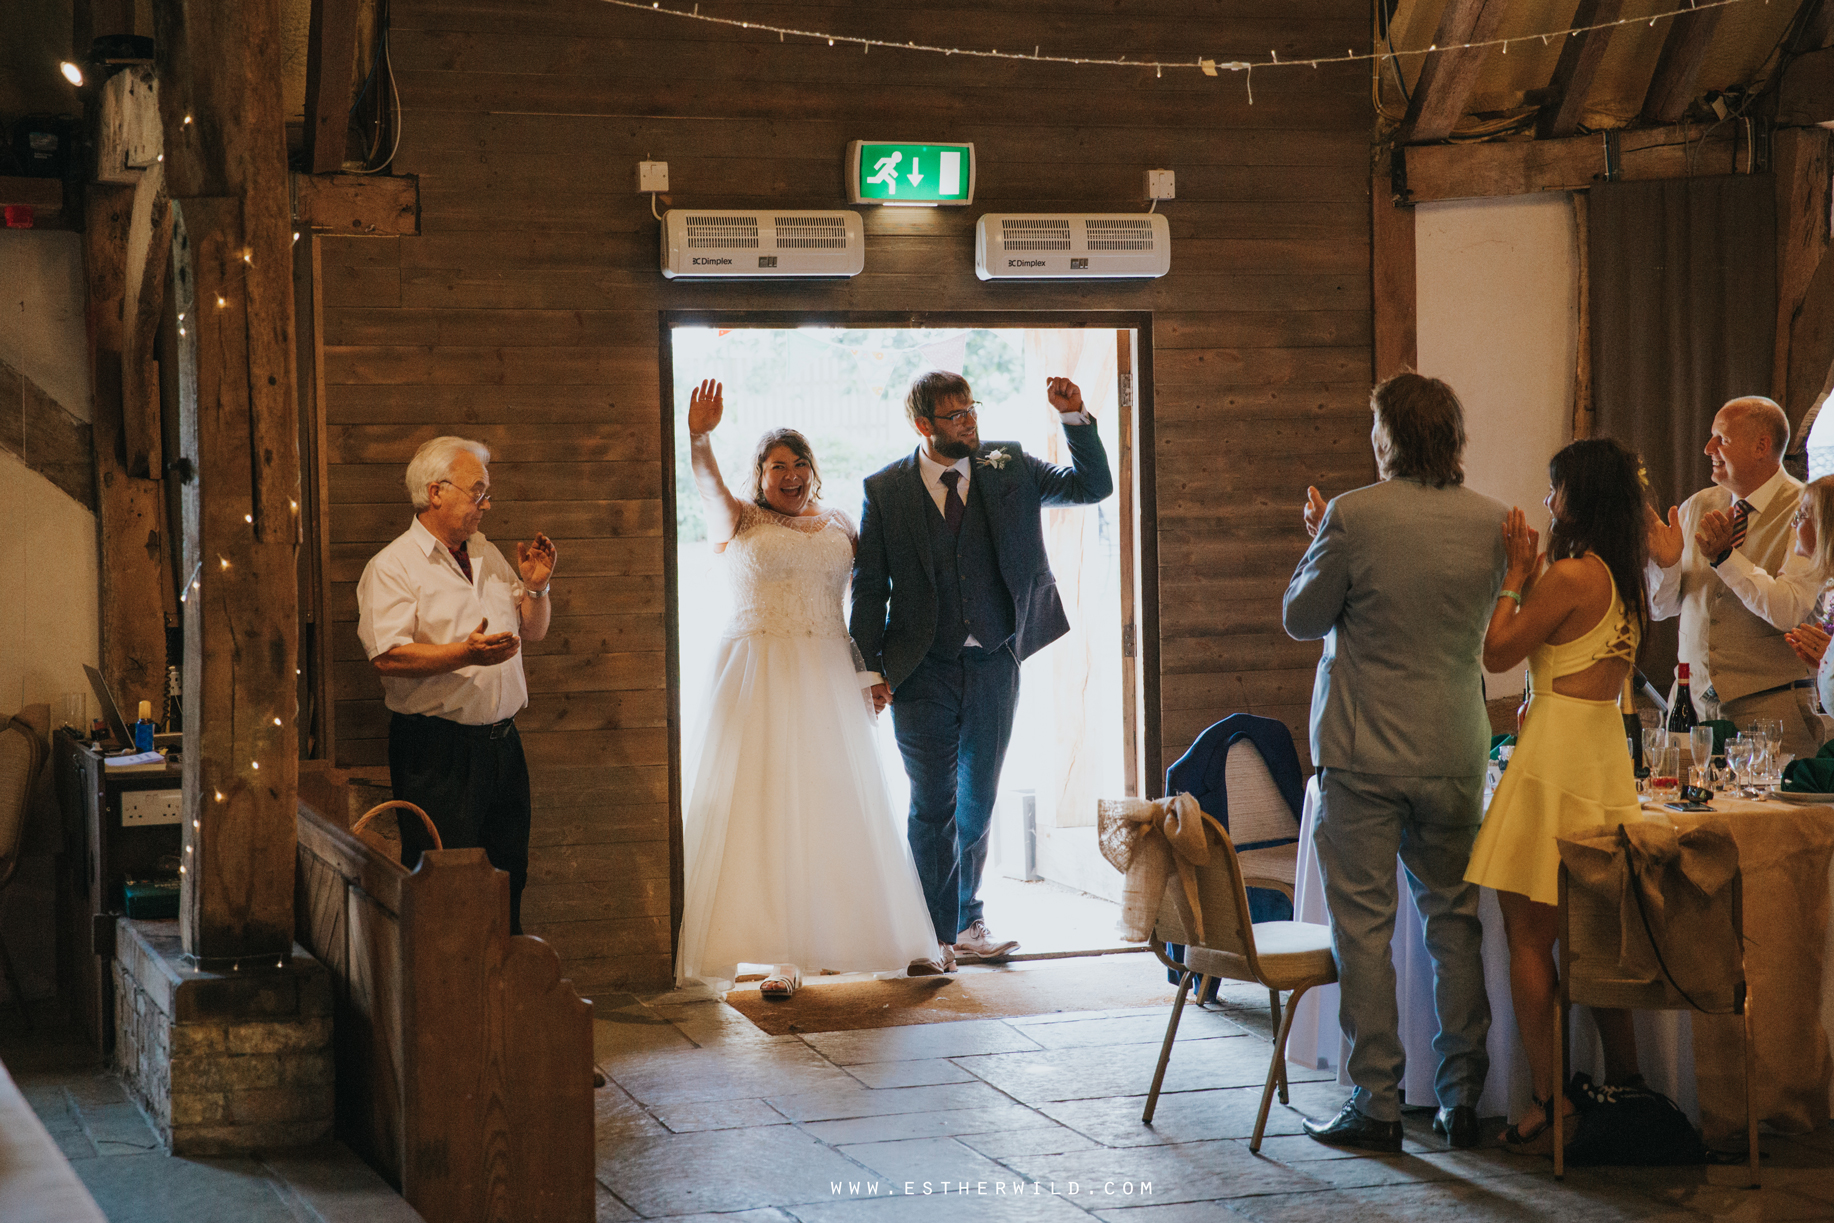 The_Red_Barn_Wedding_Kings_Lynn_Norfolk_IMG_1421.jpg